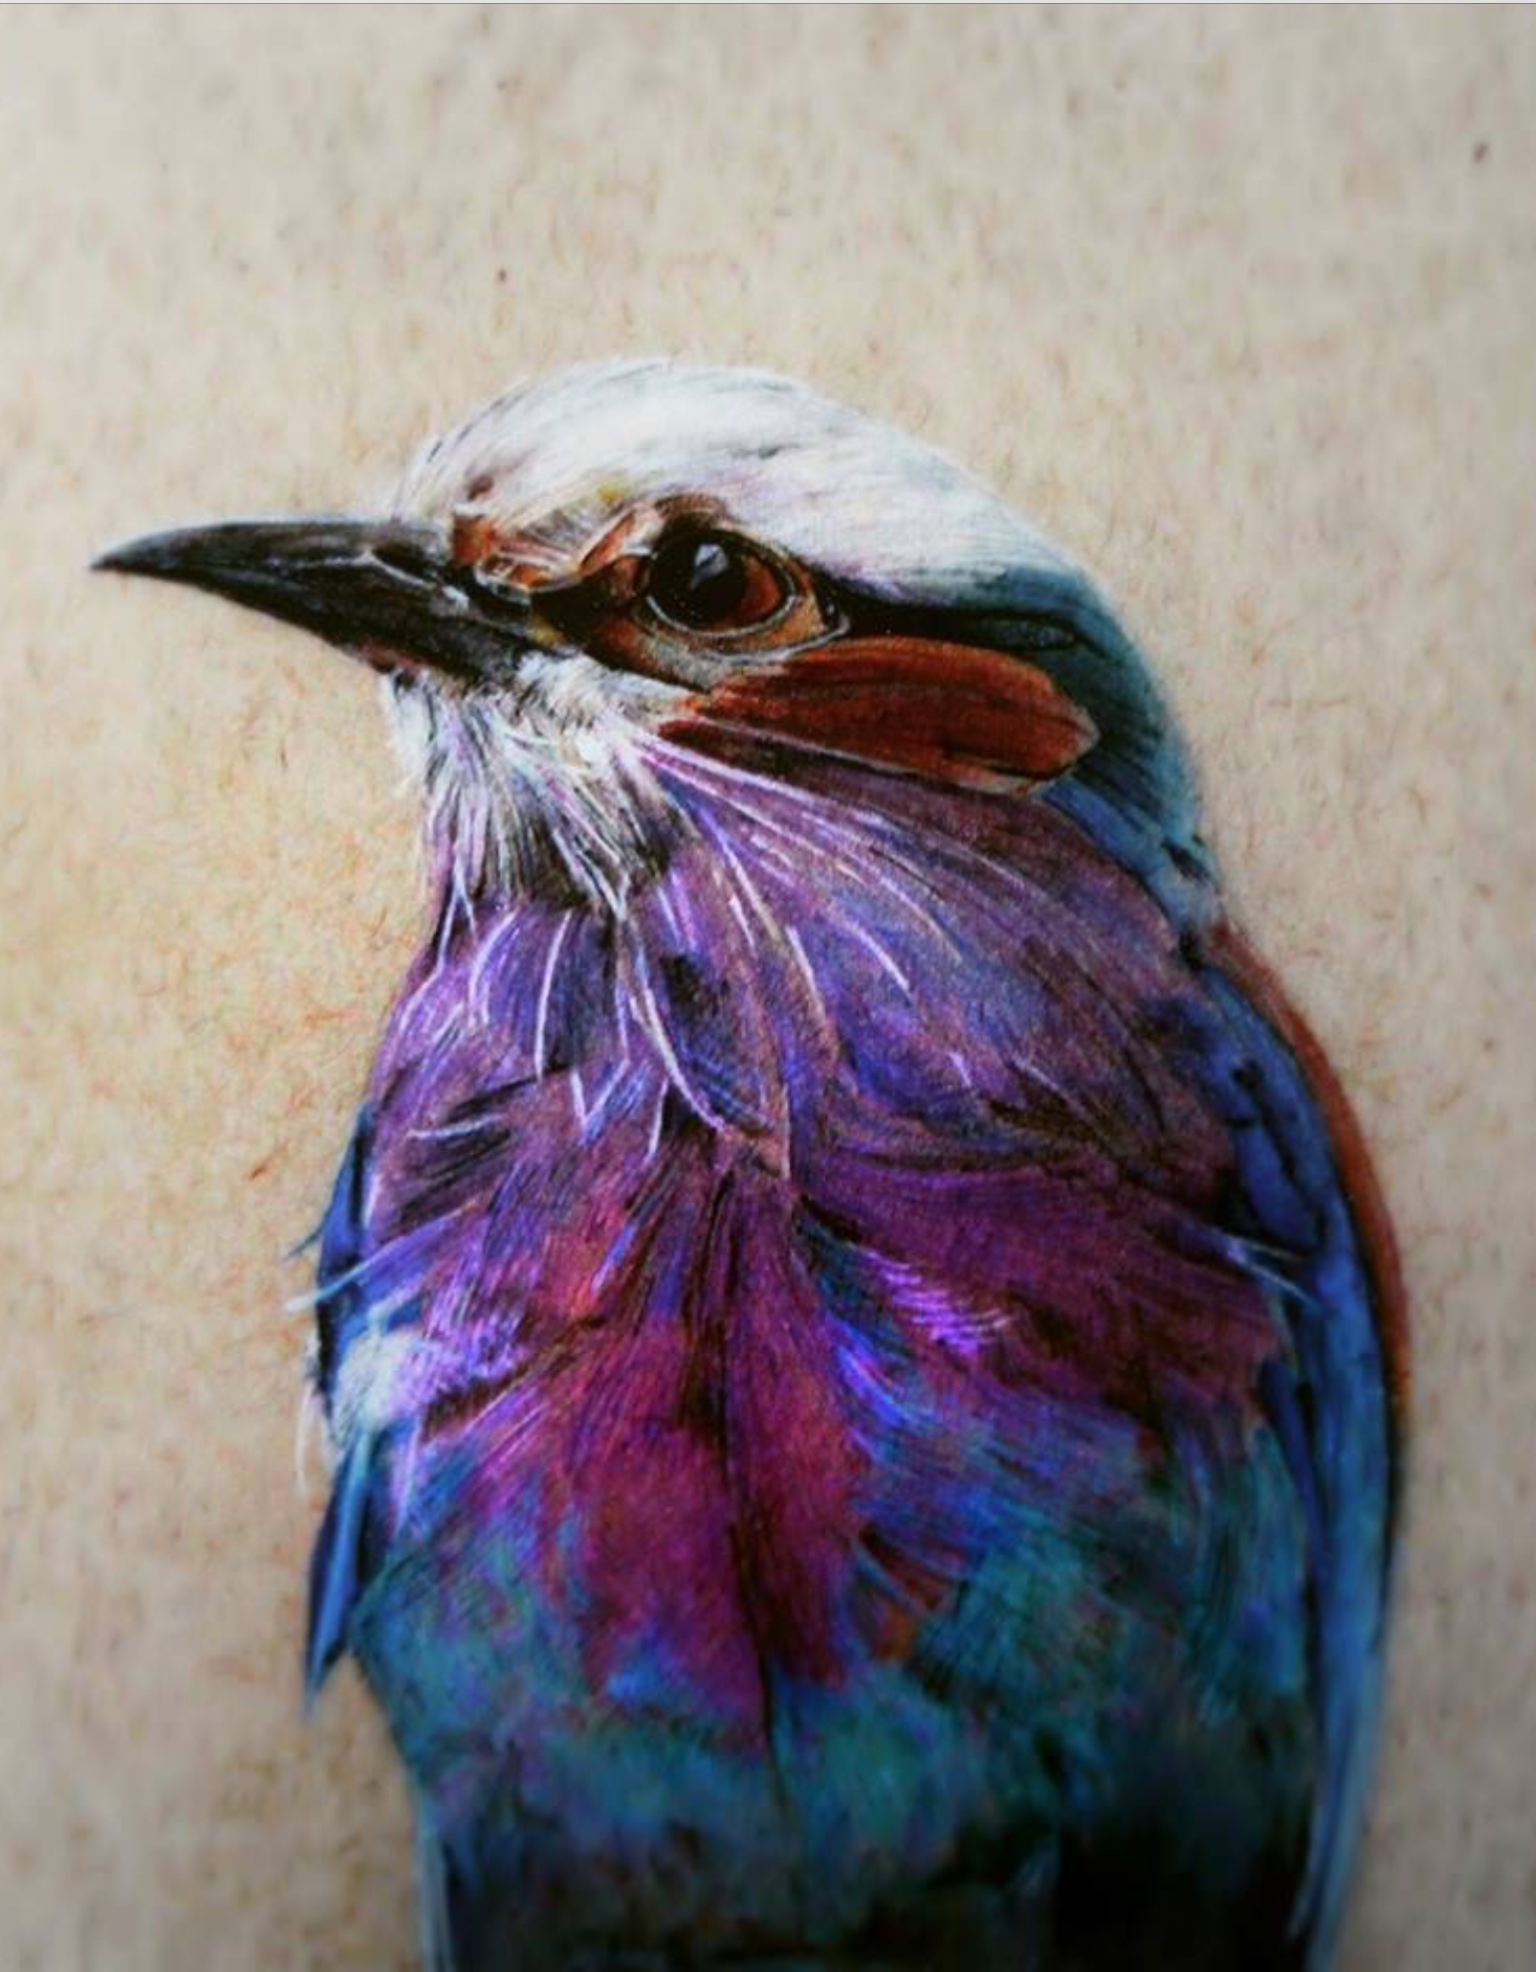 Lilac Breasted Roller Christopher Durant Caran d'Ache Luminance and Faber Castell Polychromos pencils, 2016